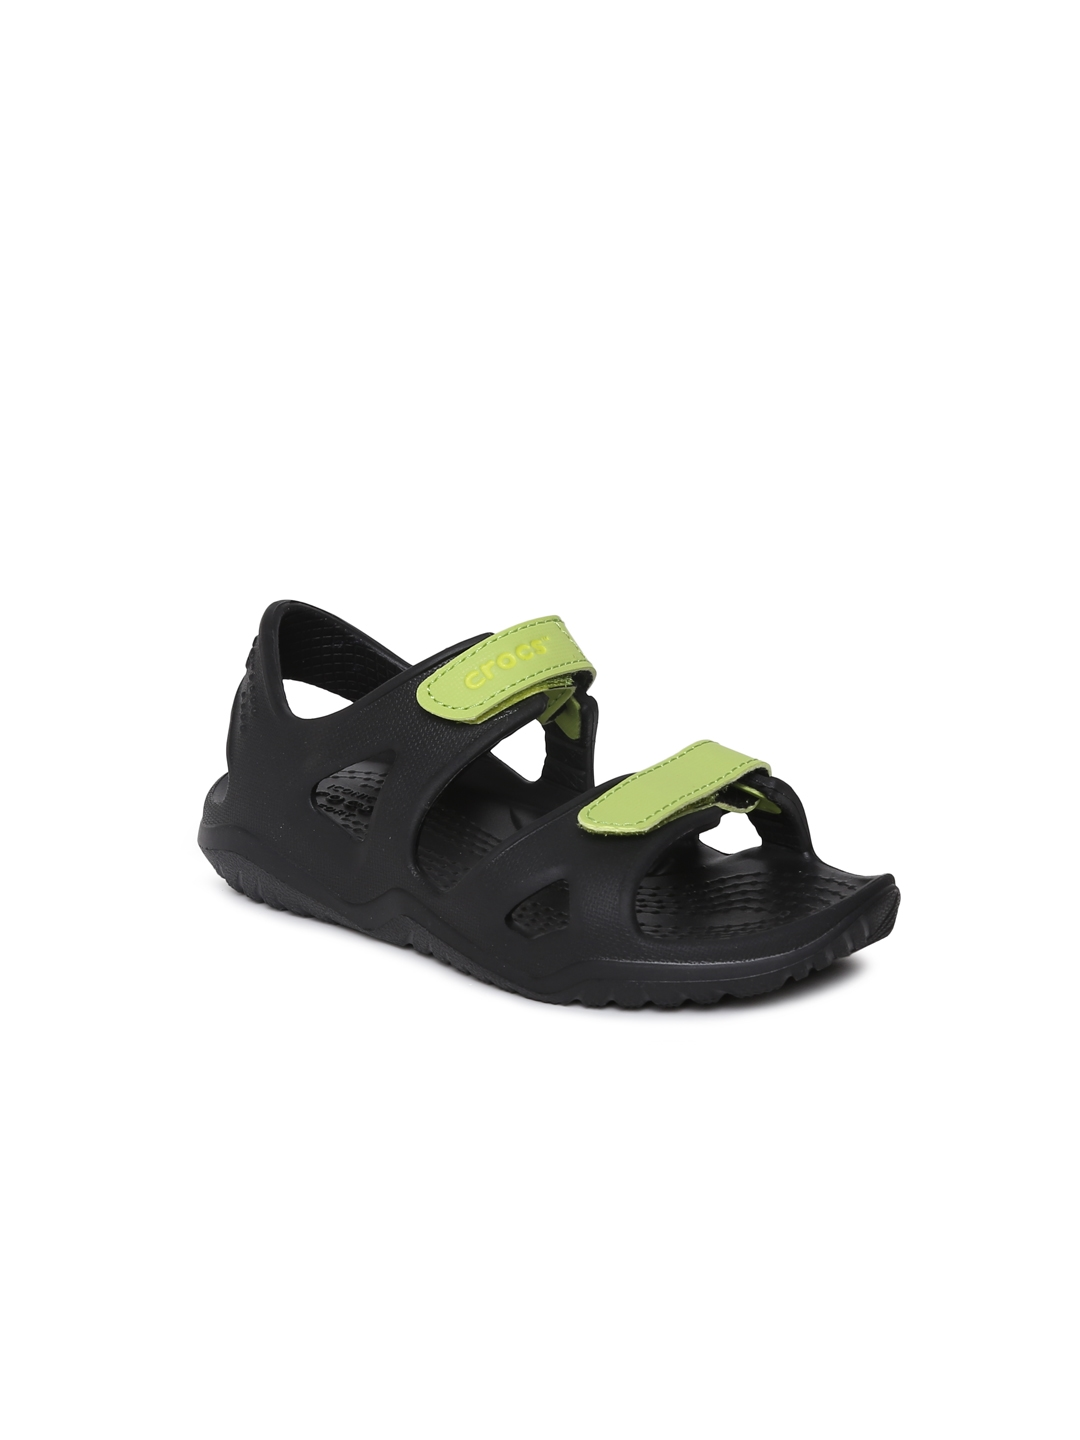 ab46da909fa5 Buy Crocs Kids Black   Green Comfort Sandals - Sandals for Unisex ...